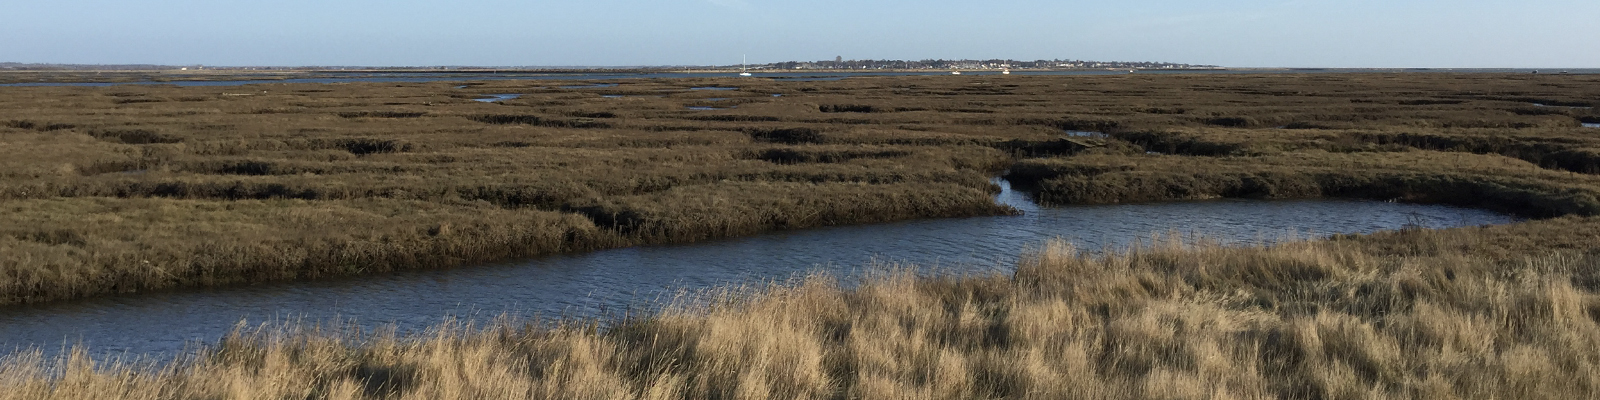 Tollesbury Parish Council, Crime Prevention, View Of Marsh Over To Mersea Island